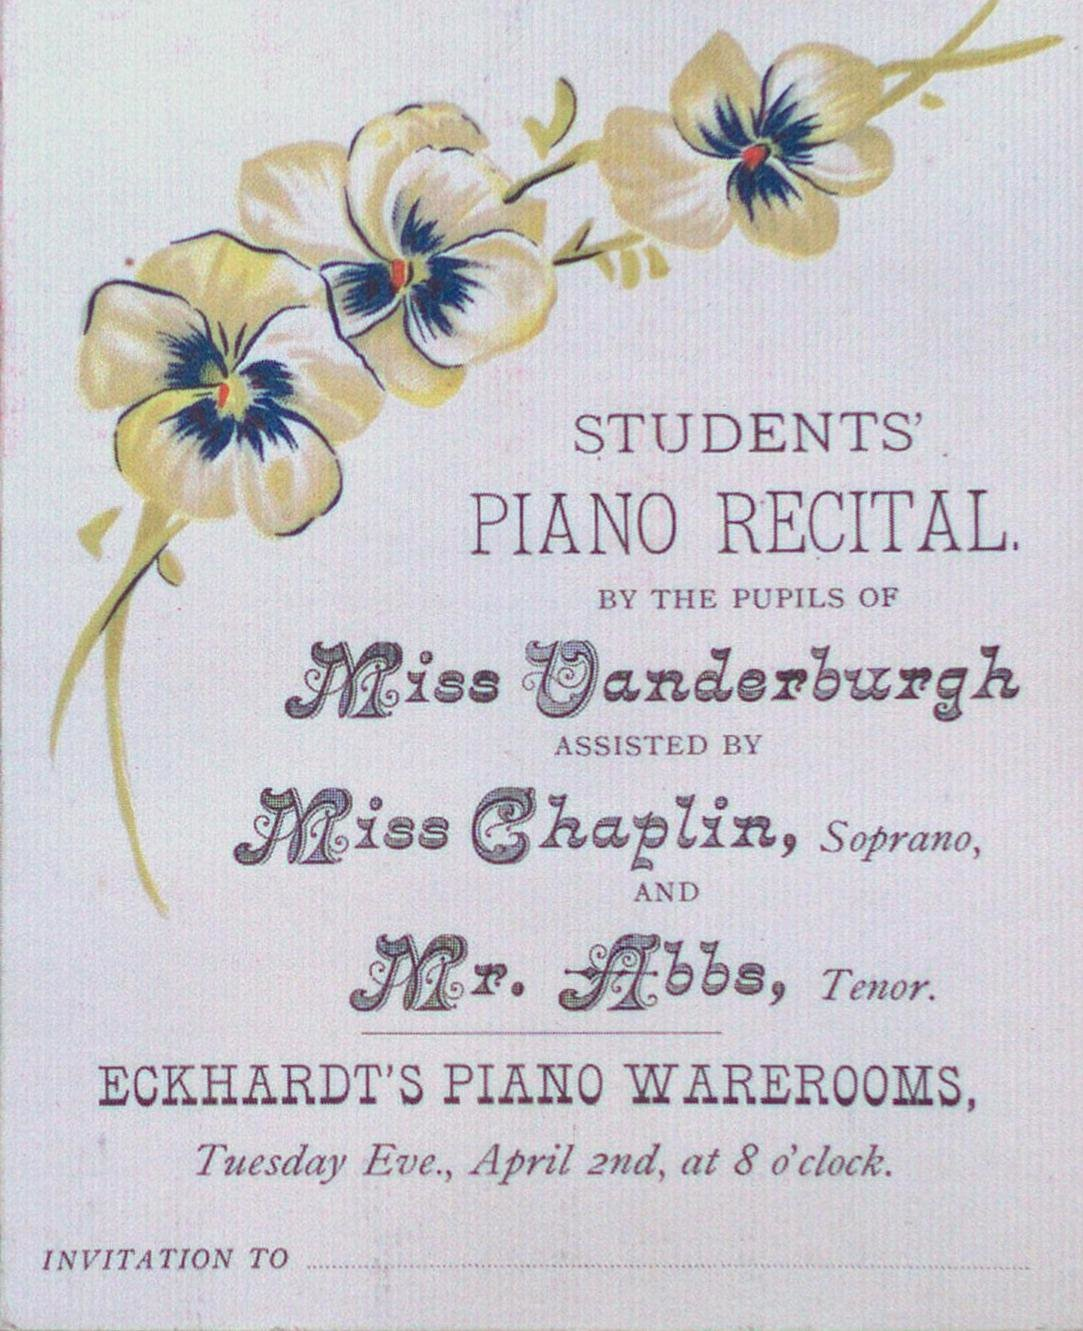 Teresa Vanderburgh's Musical Scrapbook #1 - Students Piano Recital Program